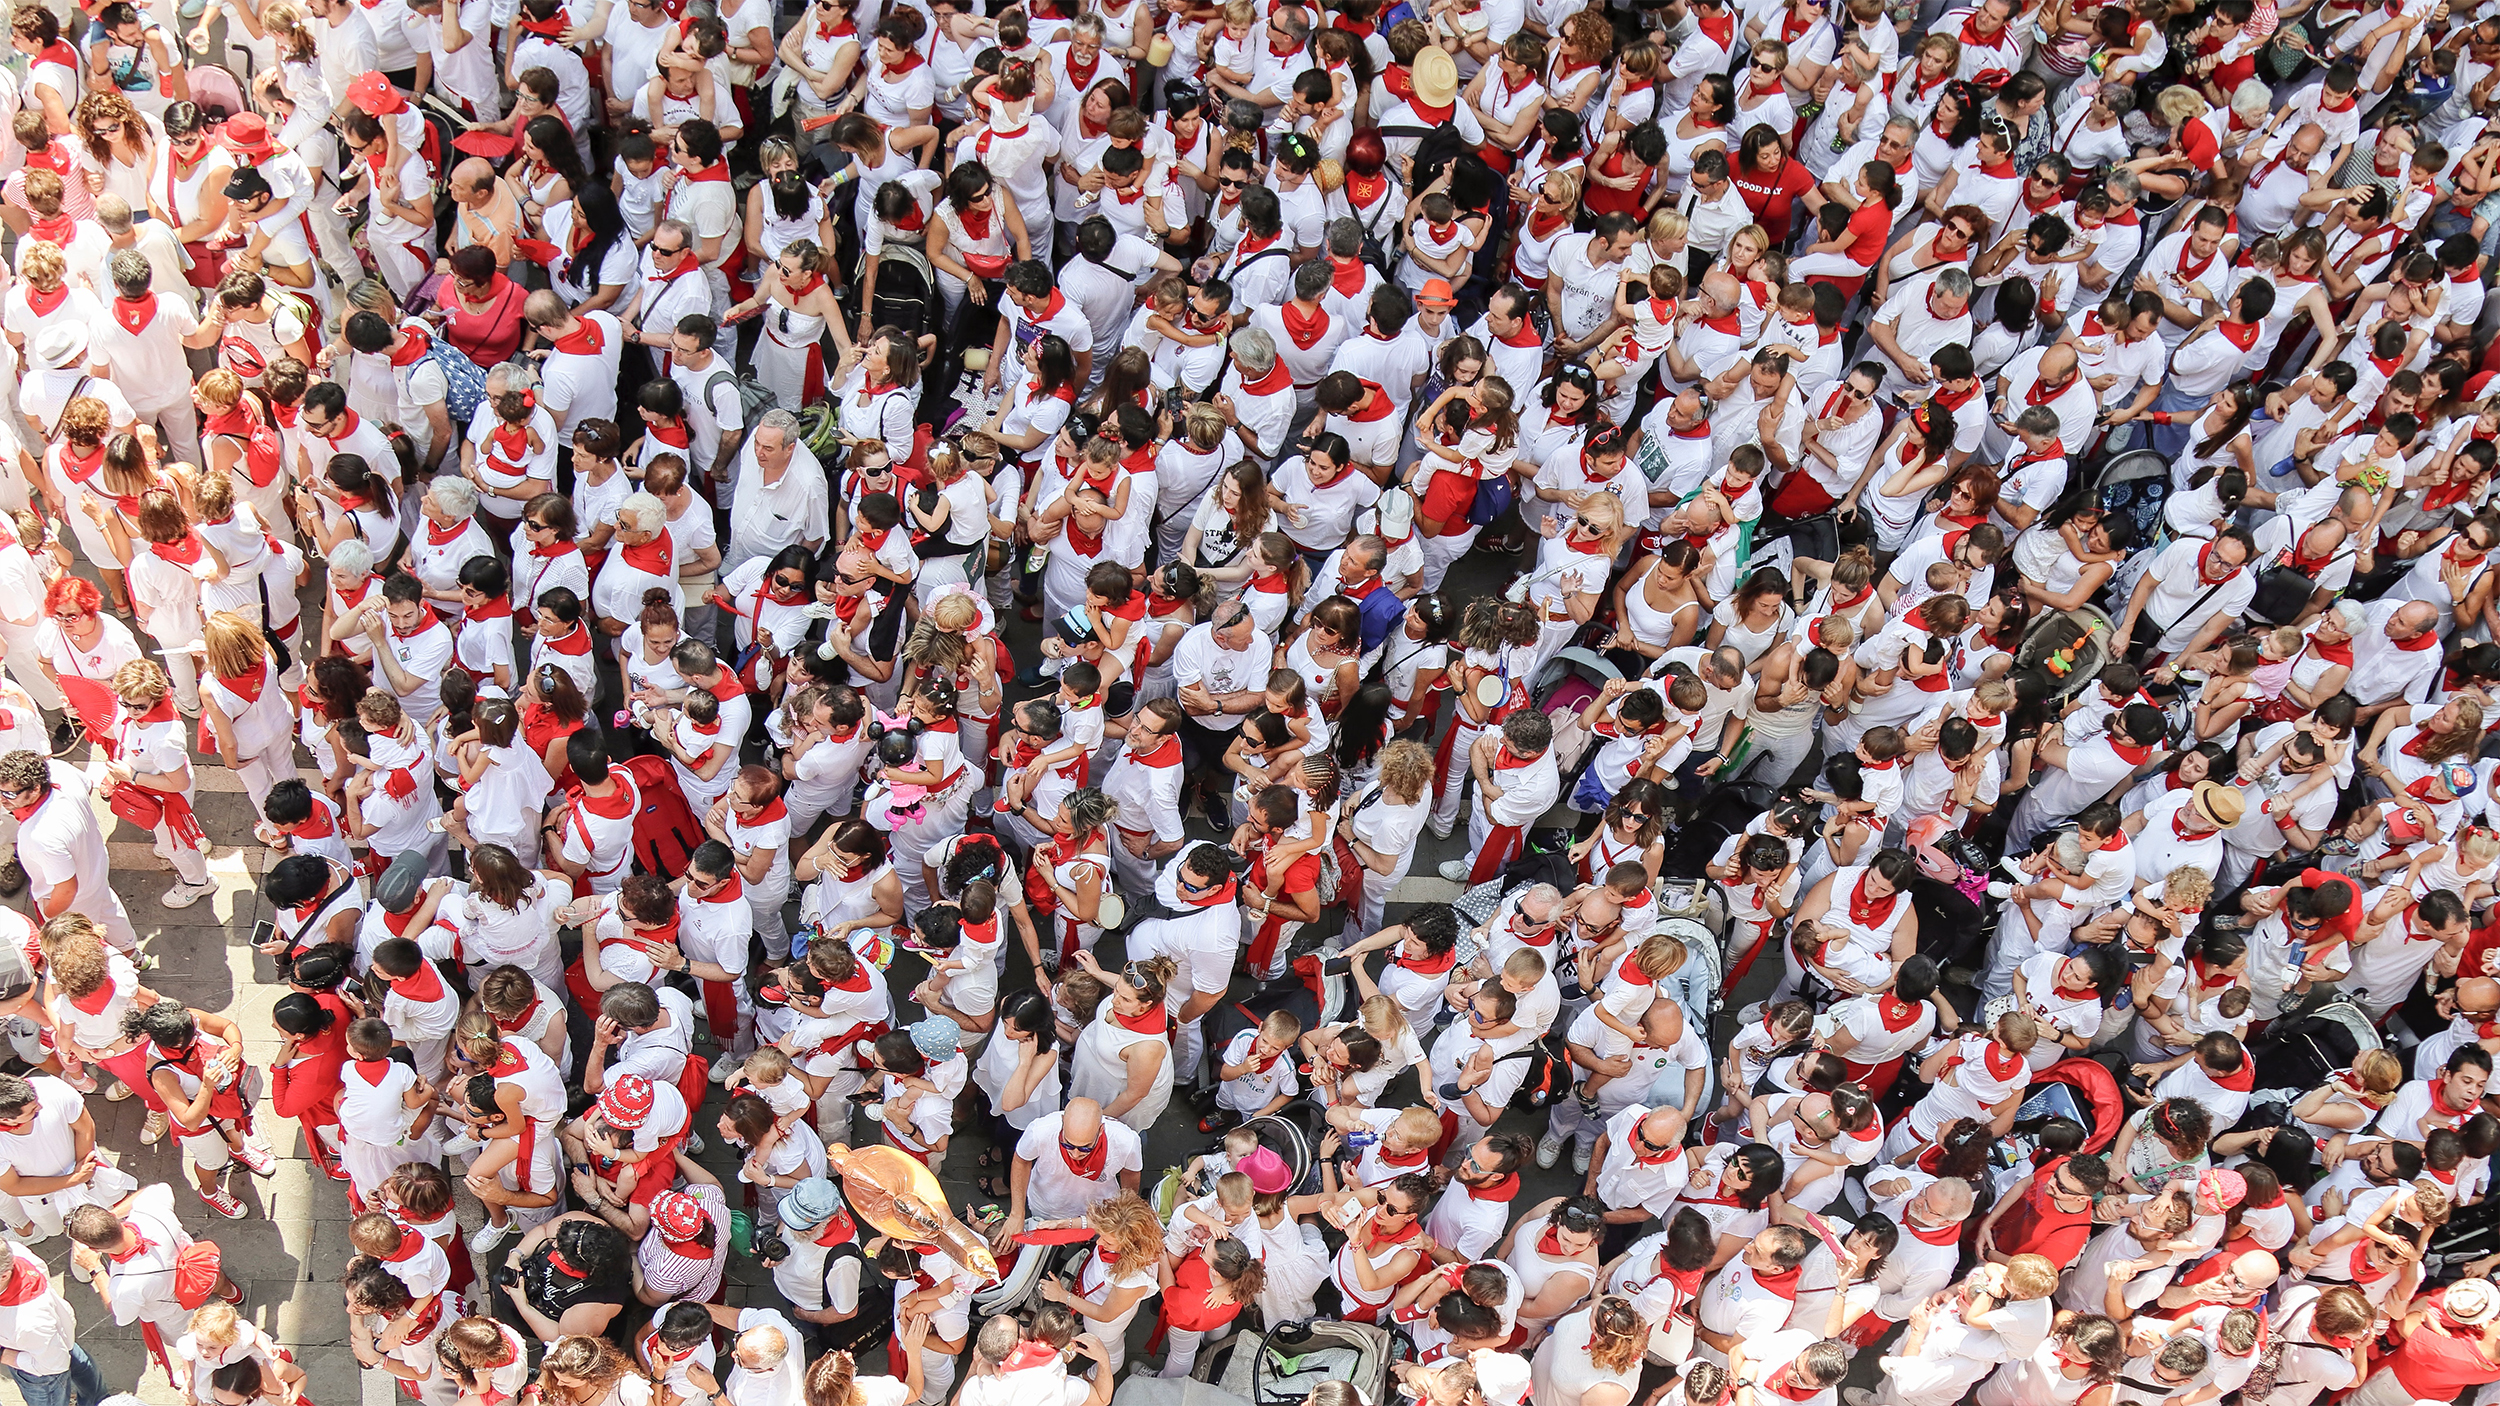 Image of a crowd taken from above.